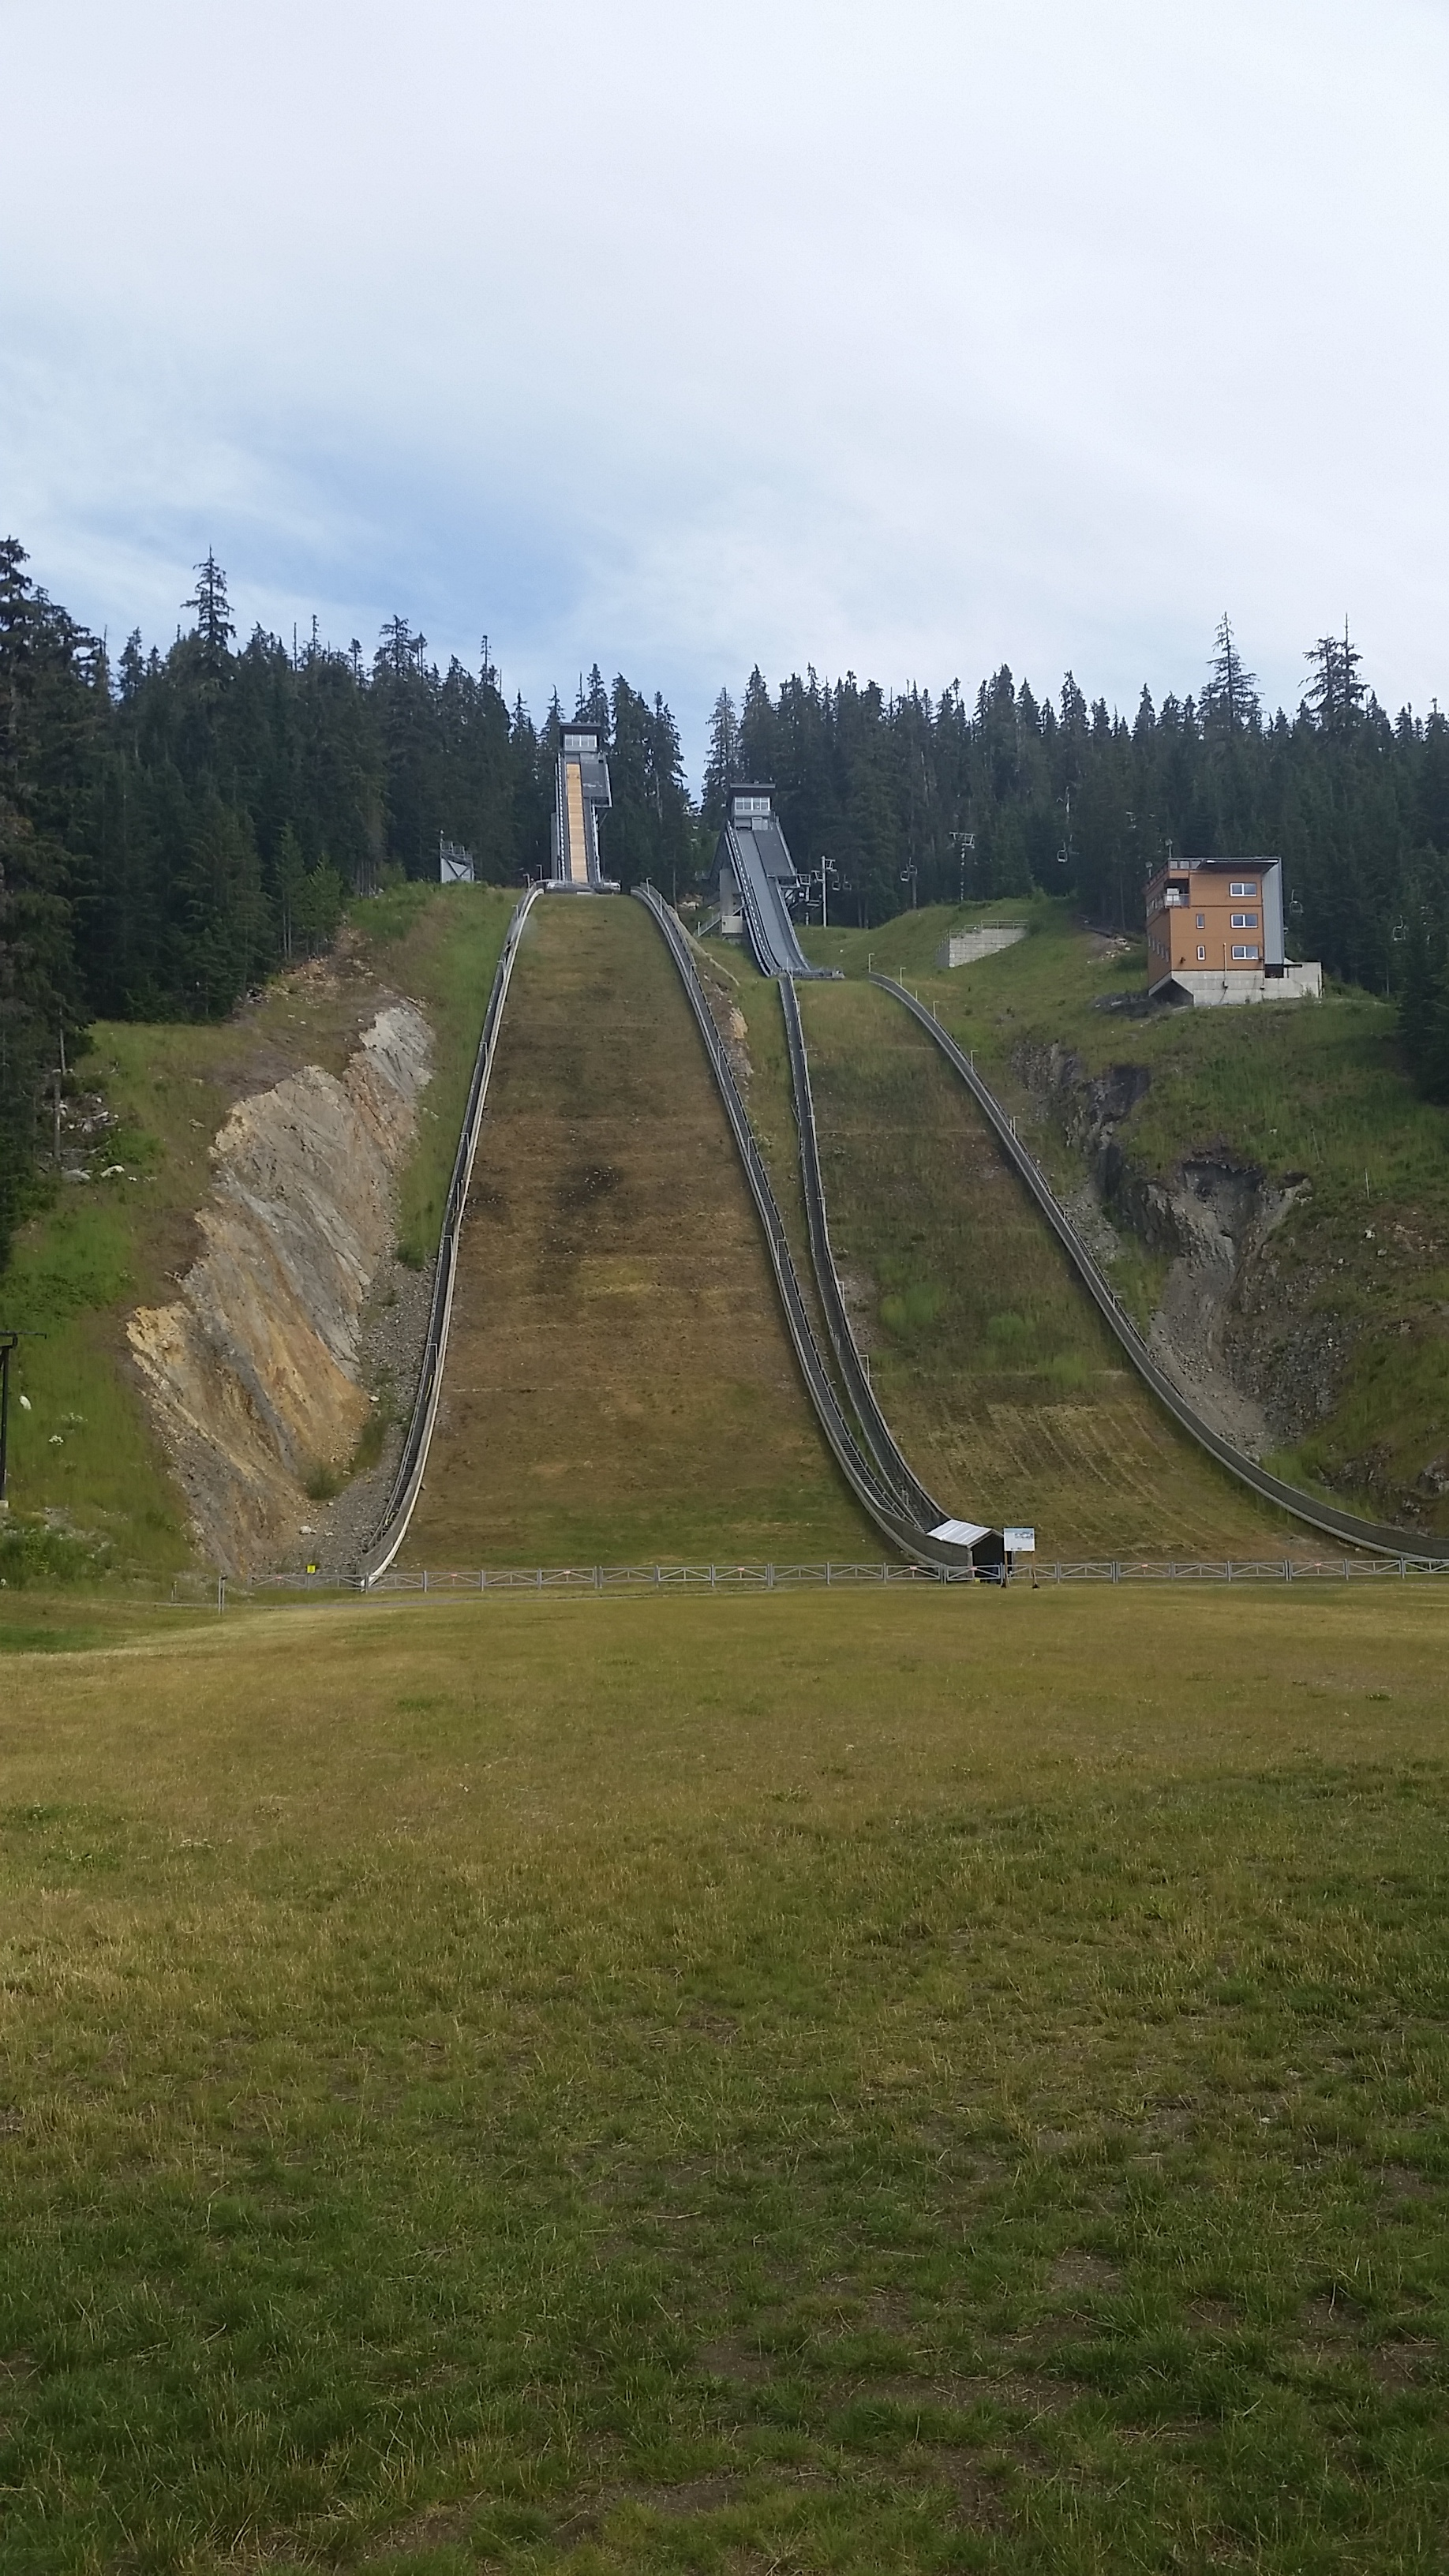 Ski jumping venue from the 2010 Olympics.